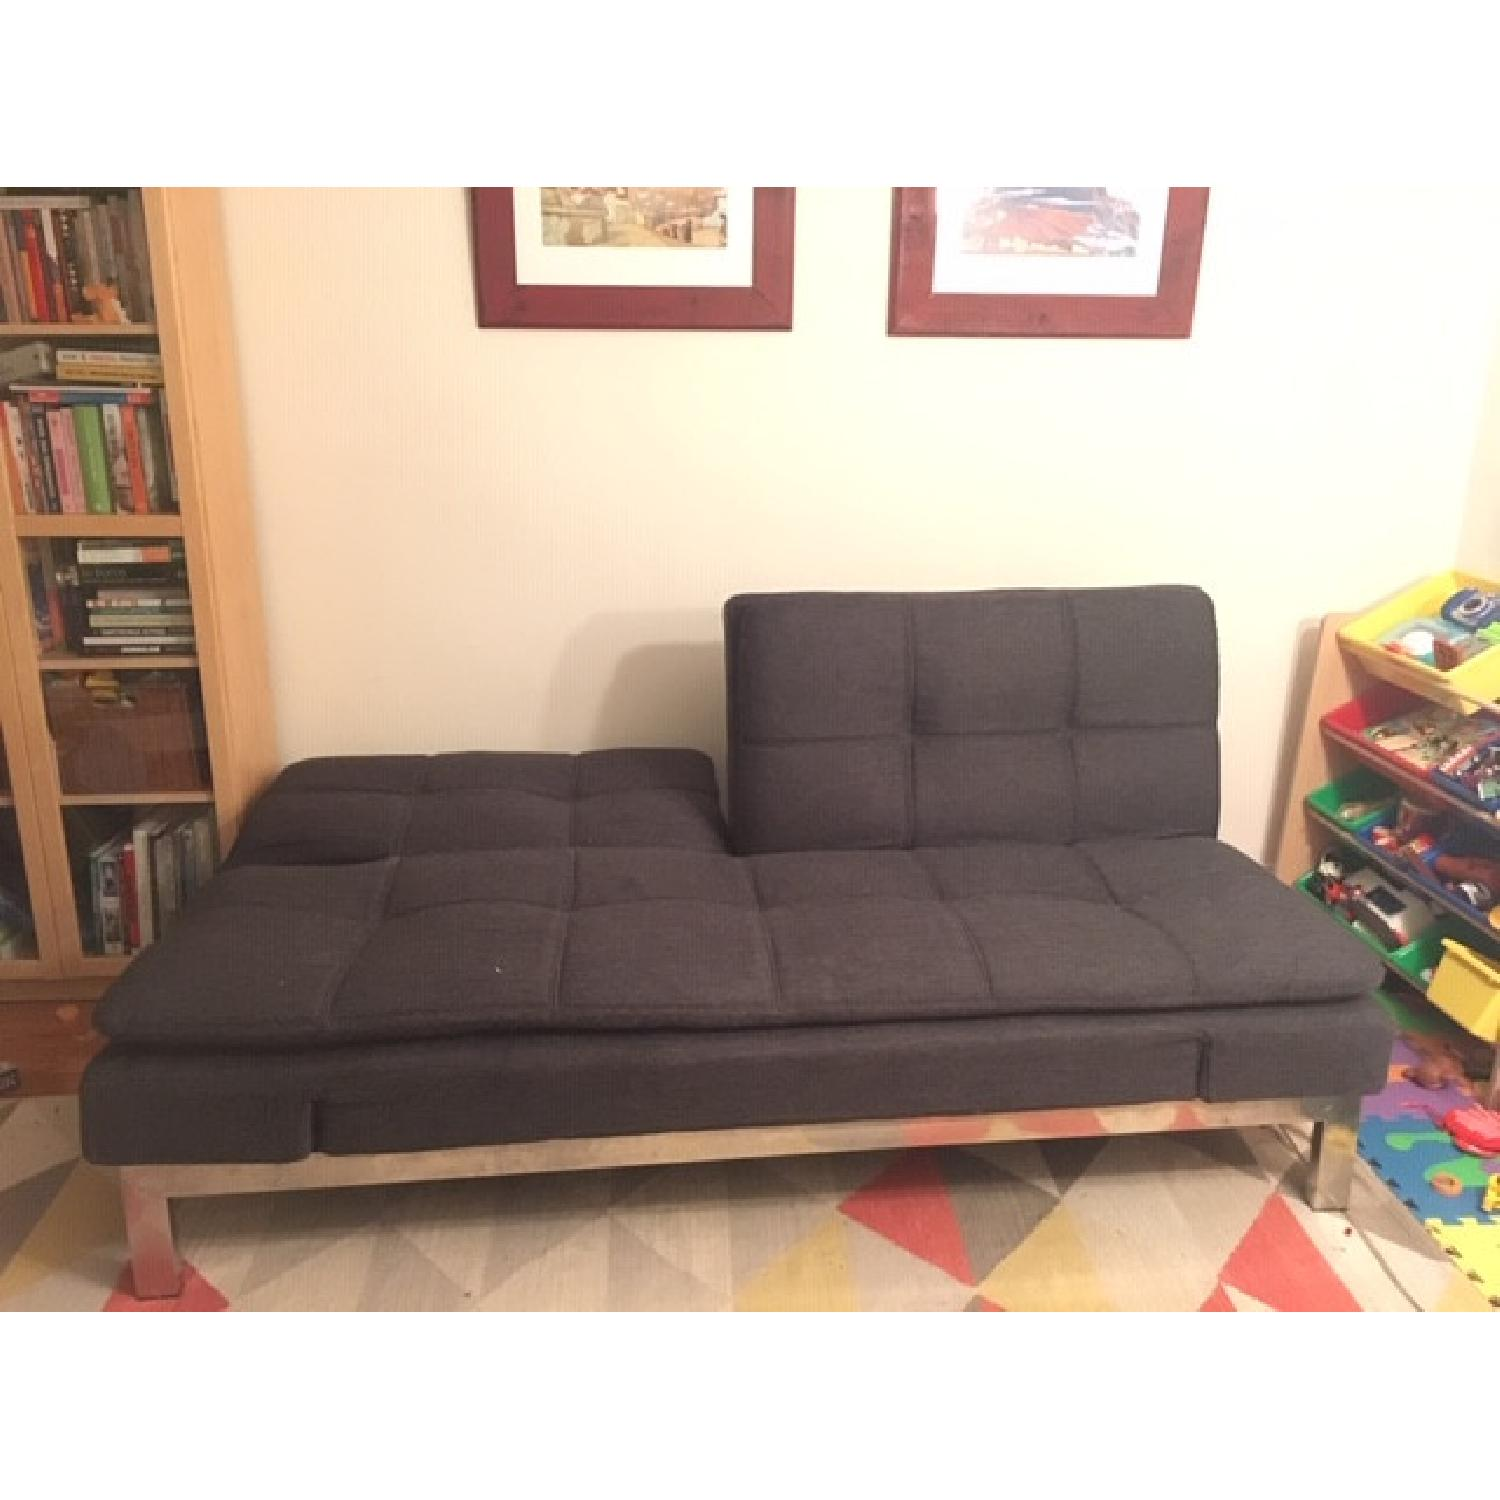 Lifestyle Solutions Serta Convertible Sofa - image-7